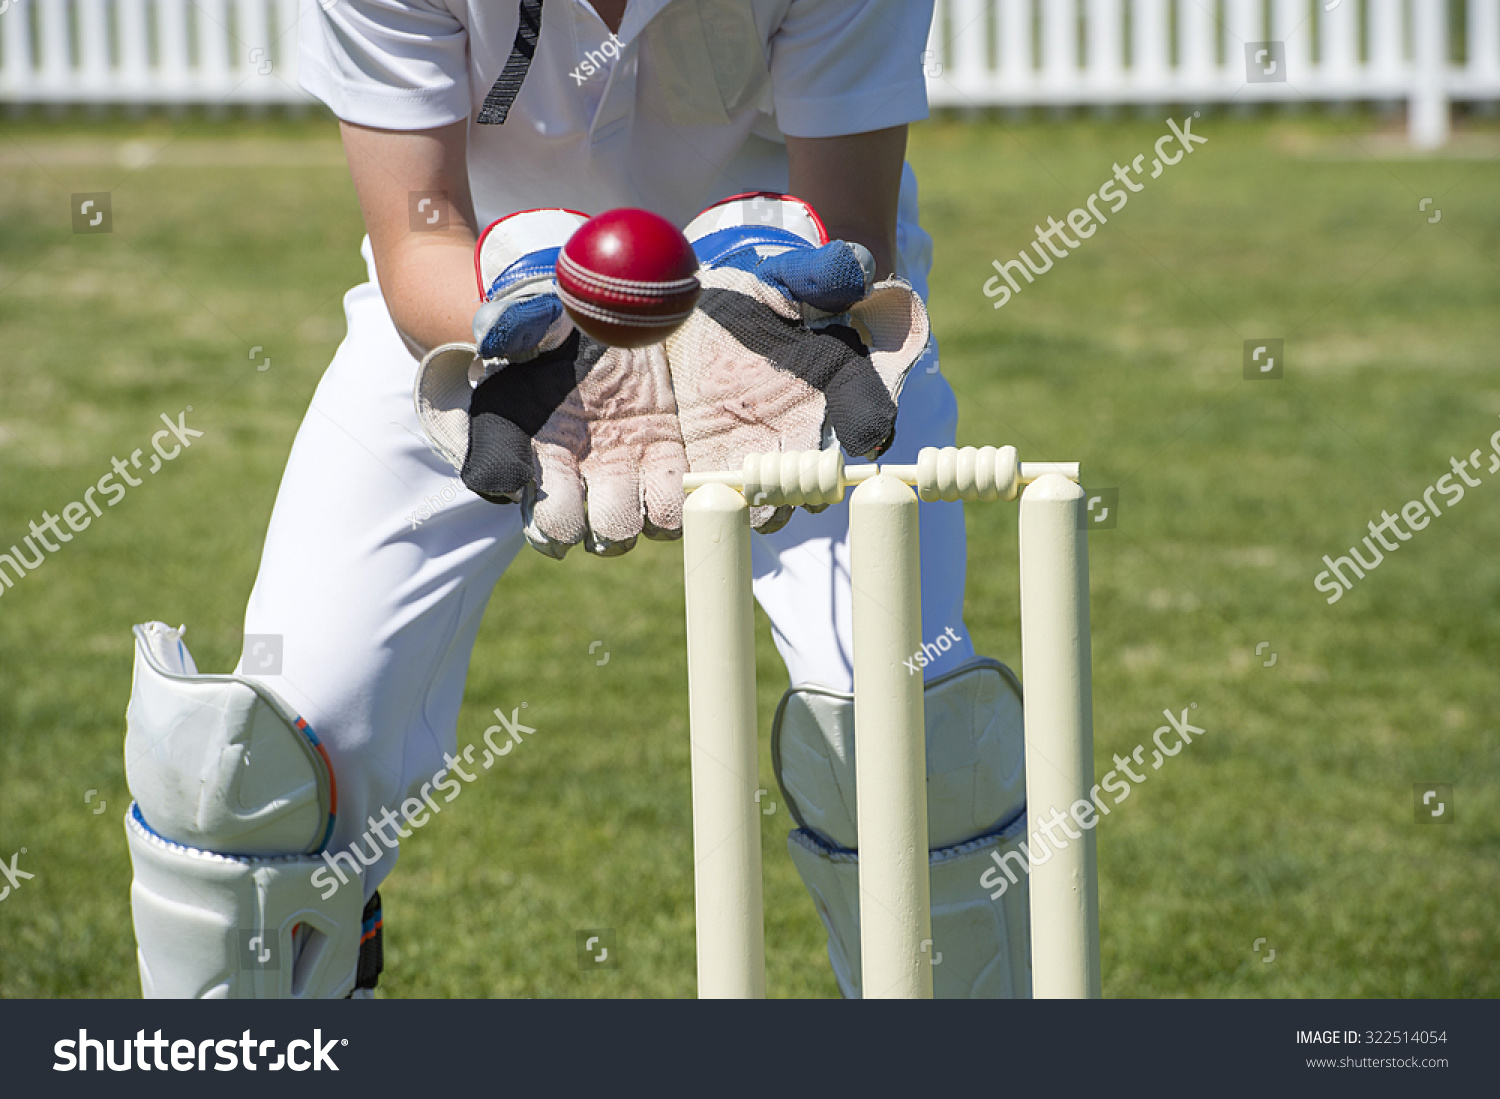 Wicket Keeper Catches Cricket Ball Foto de stock (libre de regalías ...